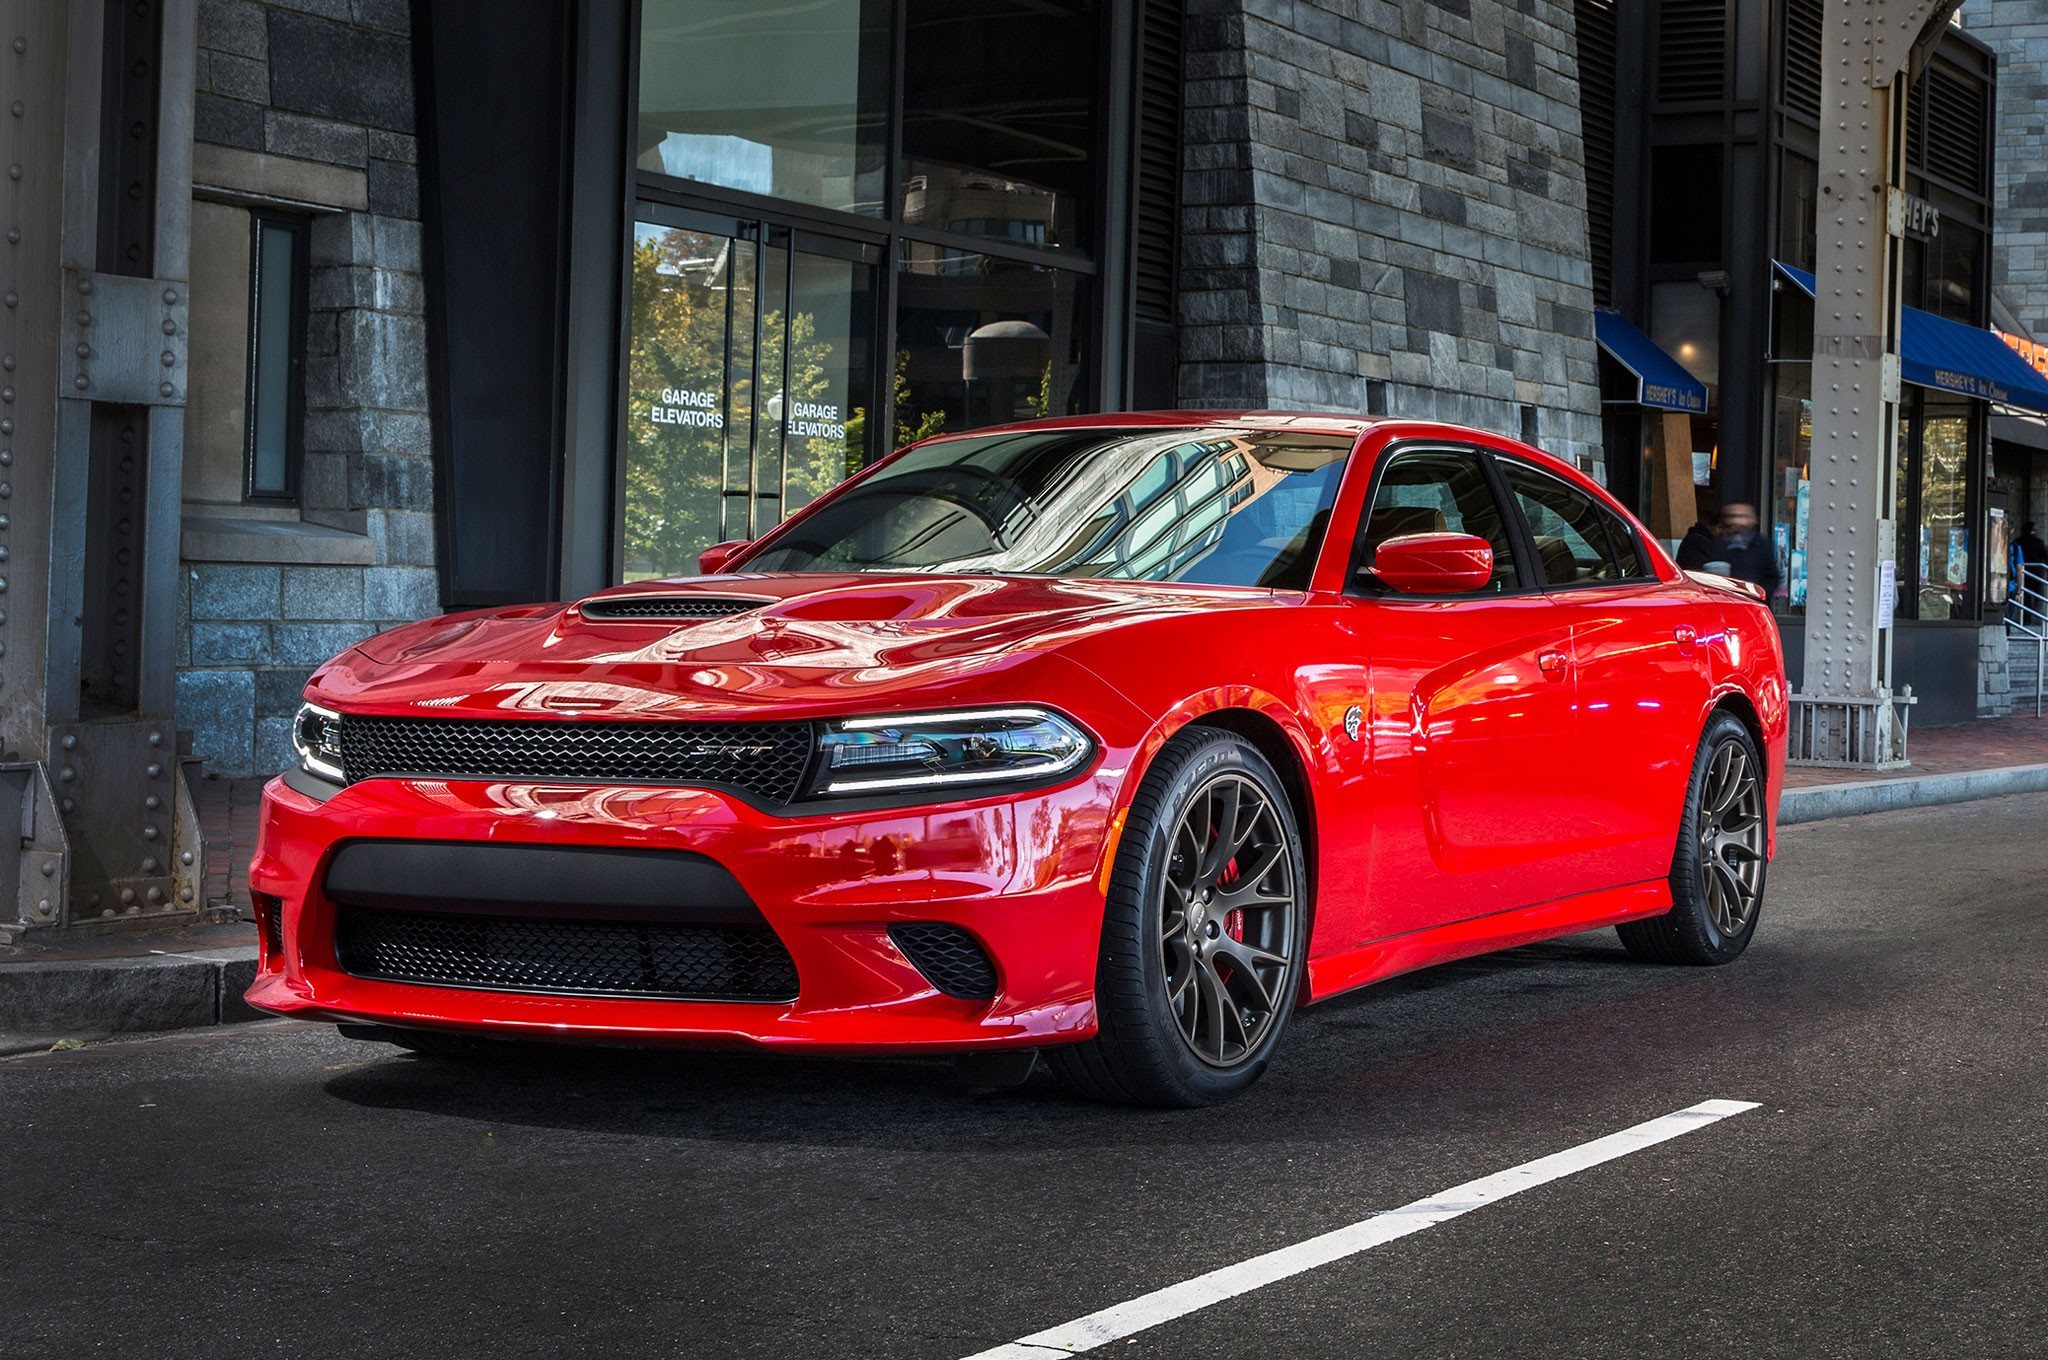 Ultra Hd Wallpapers 8k Cars Pack Oil Reset 187 Blog Archive 187 2018 Dodge Charger Srt8 Red